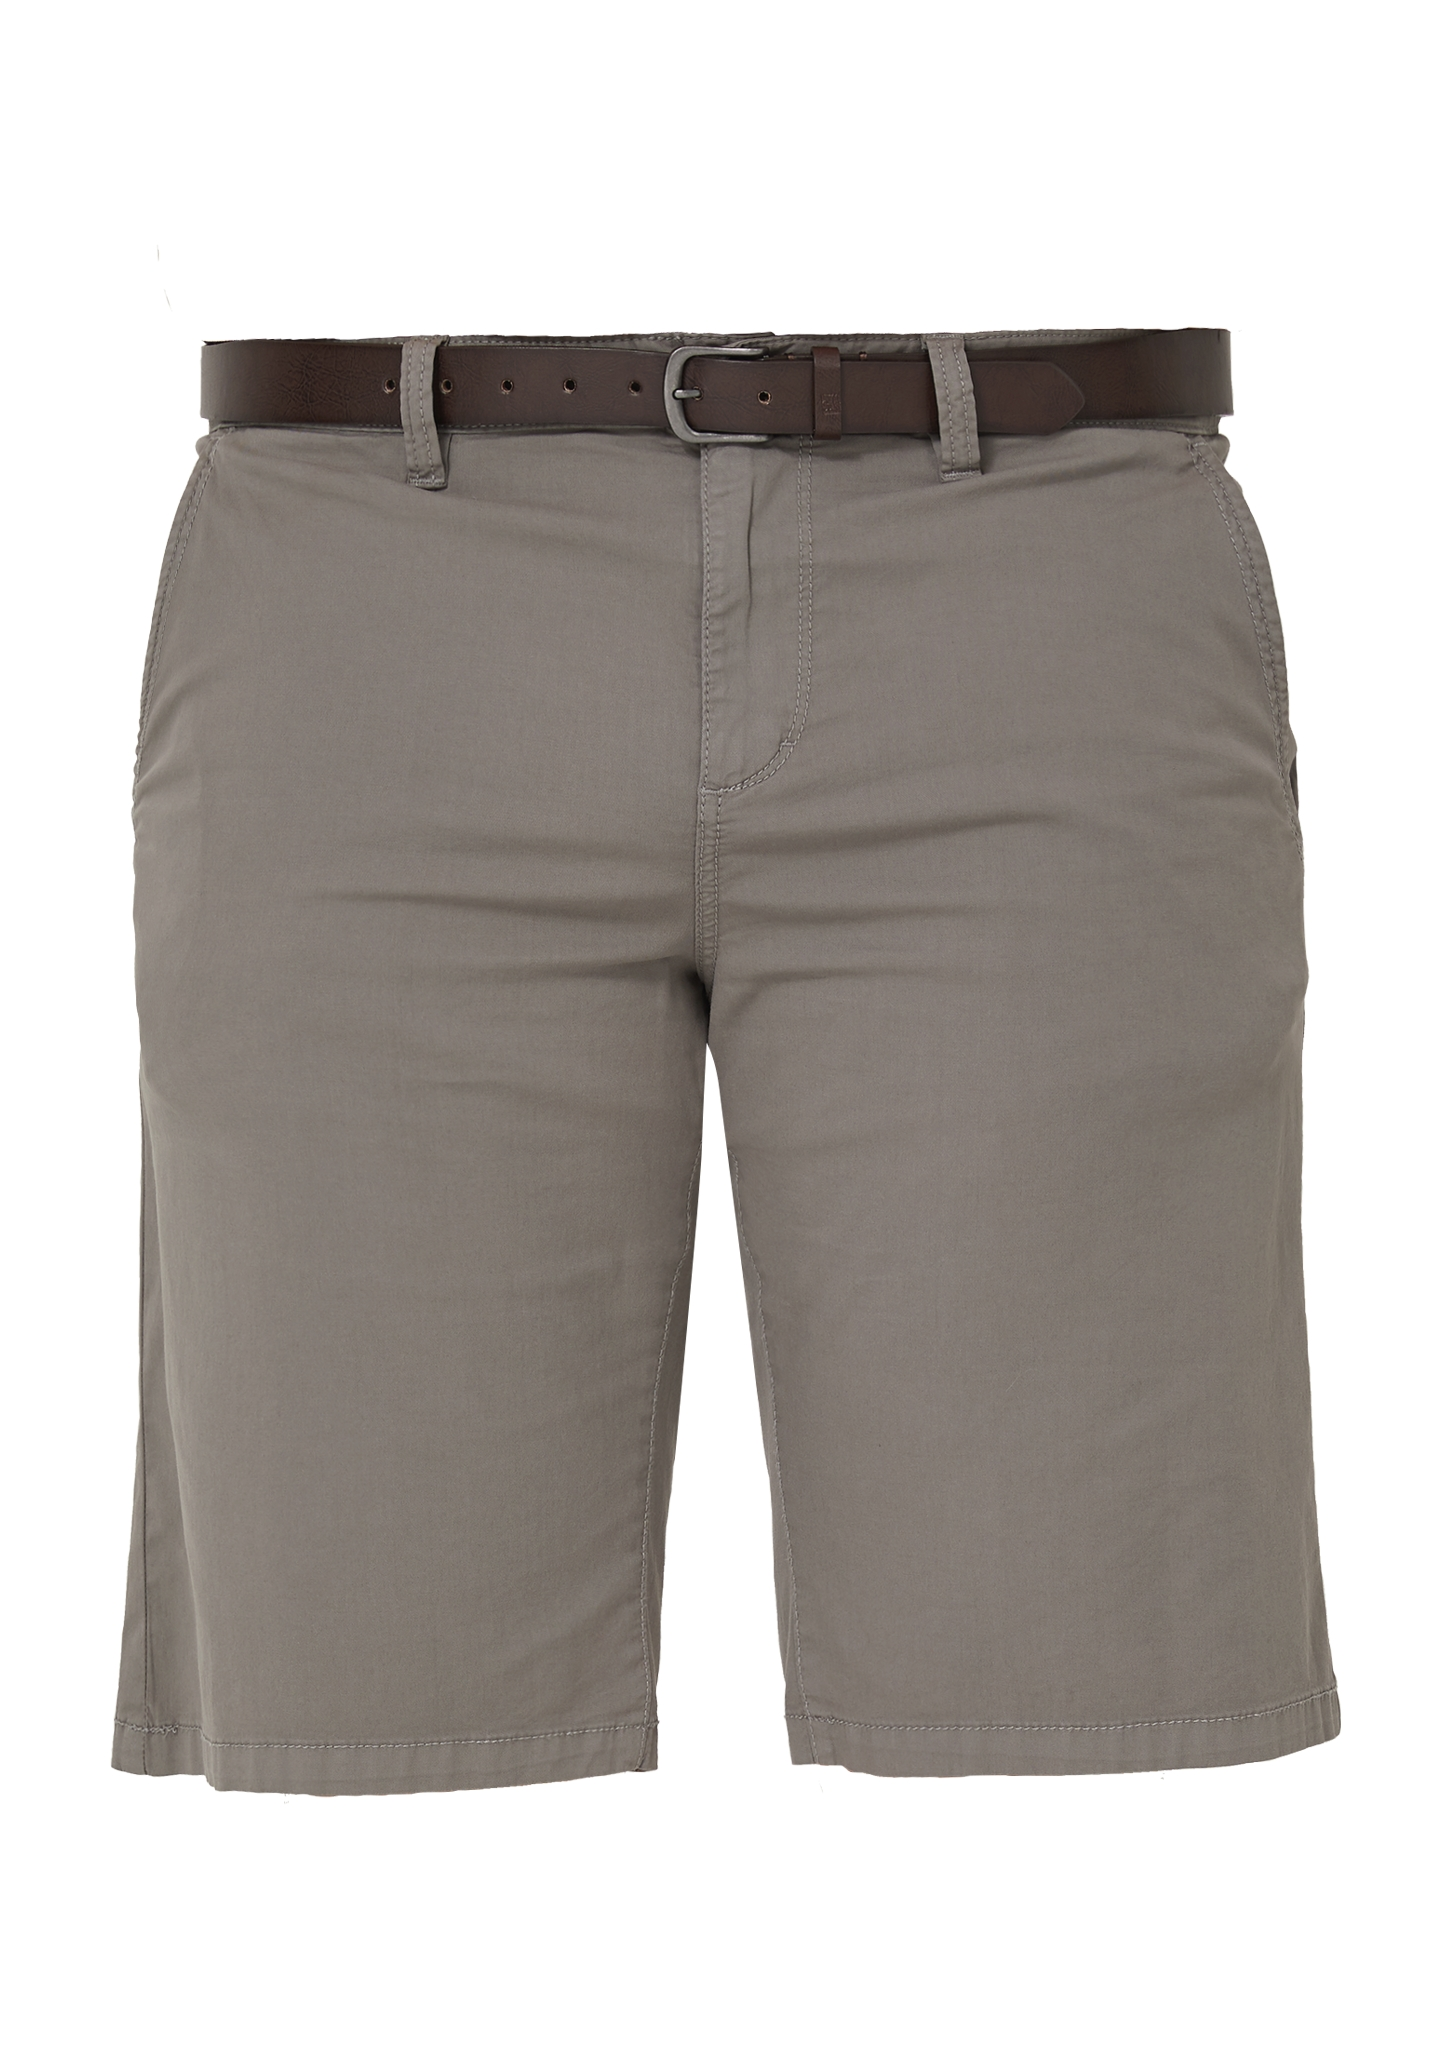 Bermuda | Bekleidung > Shorts & Bermudas > Bermudas | s.Oliver Men Big Sizes